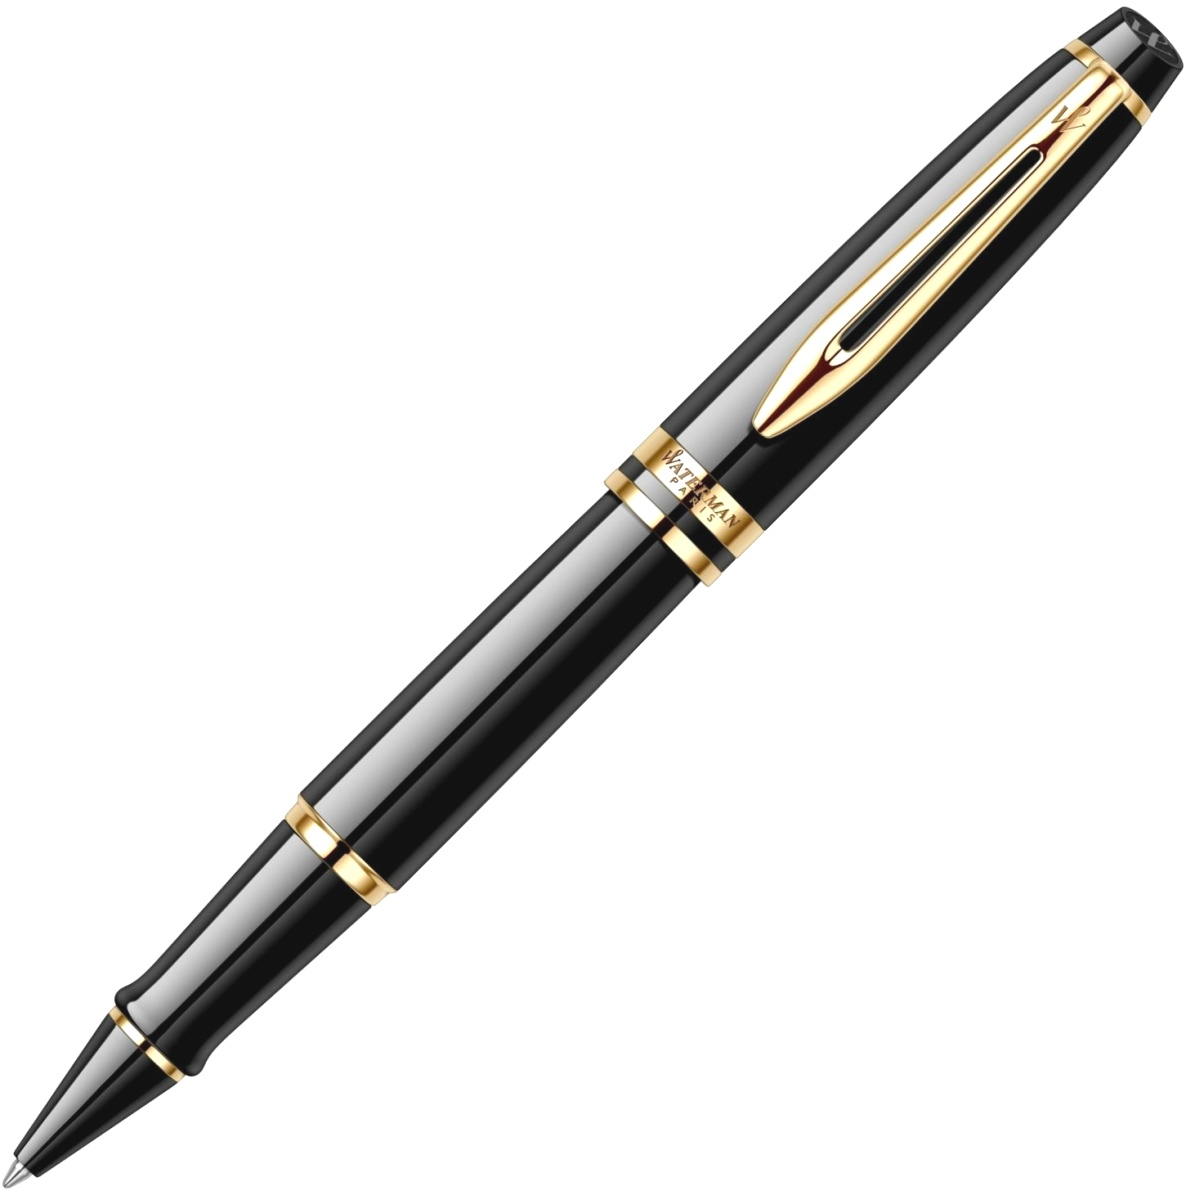 Ручка-роллер Waterman Expert 3 Essential, Laque Black GT